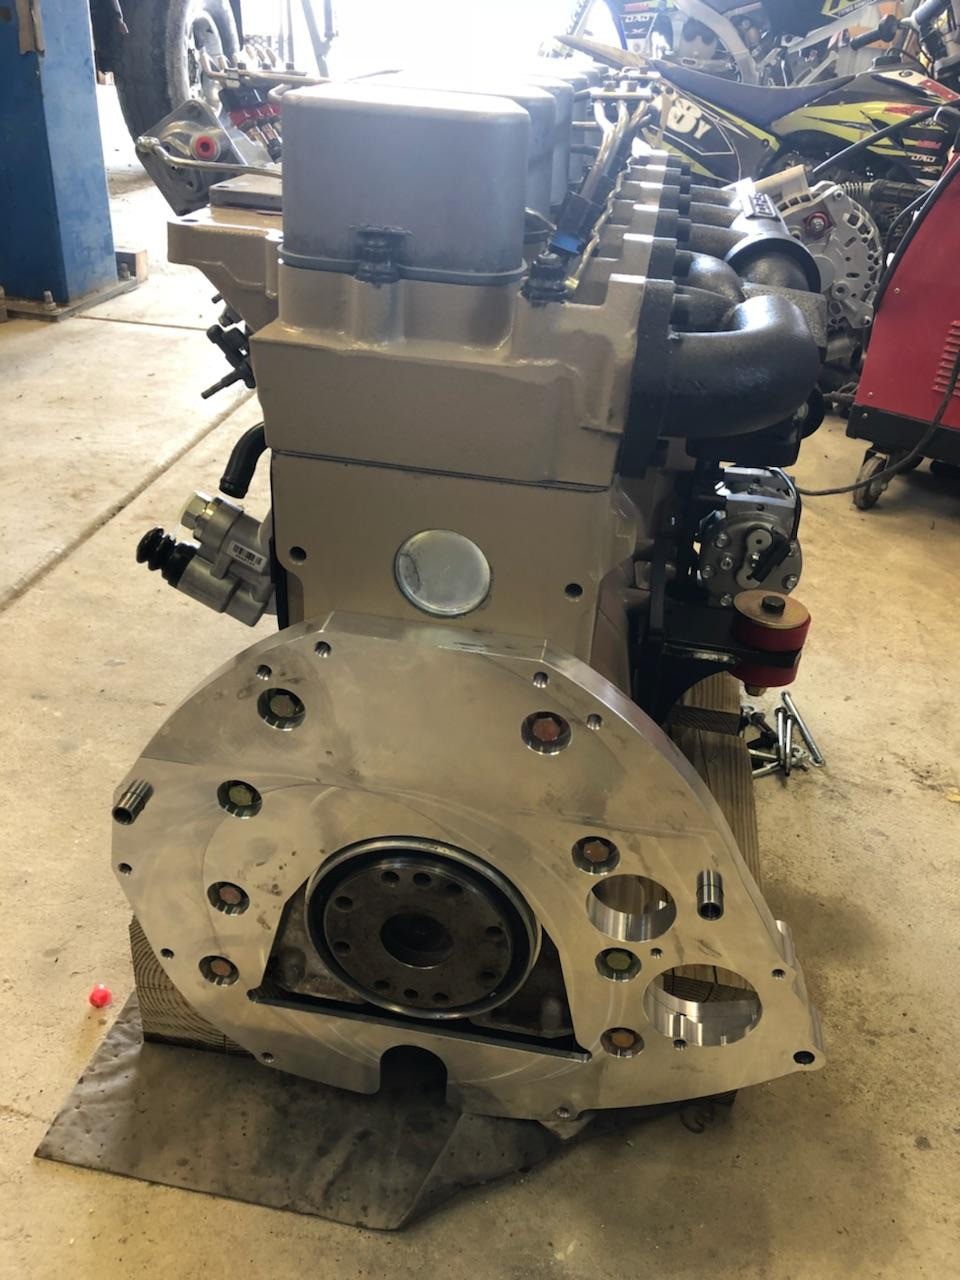 5 9 Cummins Diesel Engine Build With Ford Truck Adapter Kit